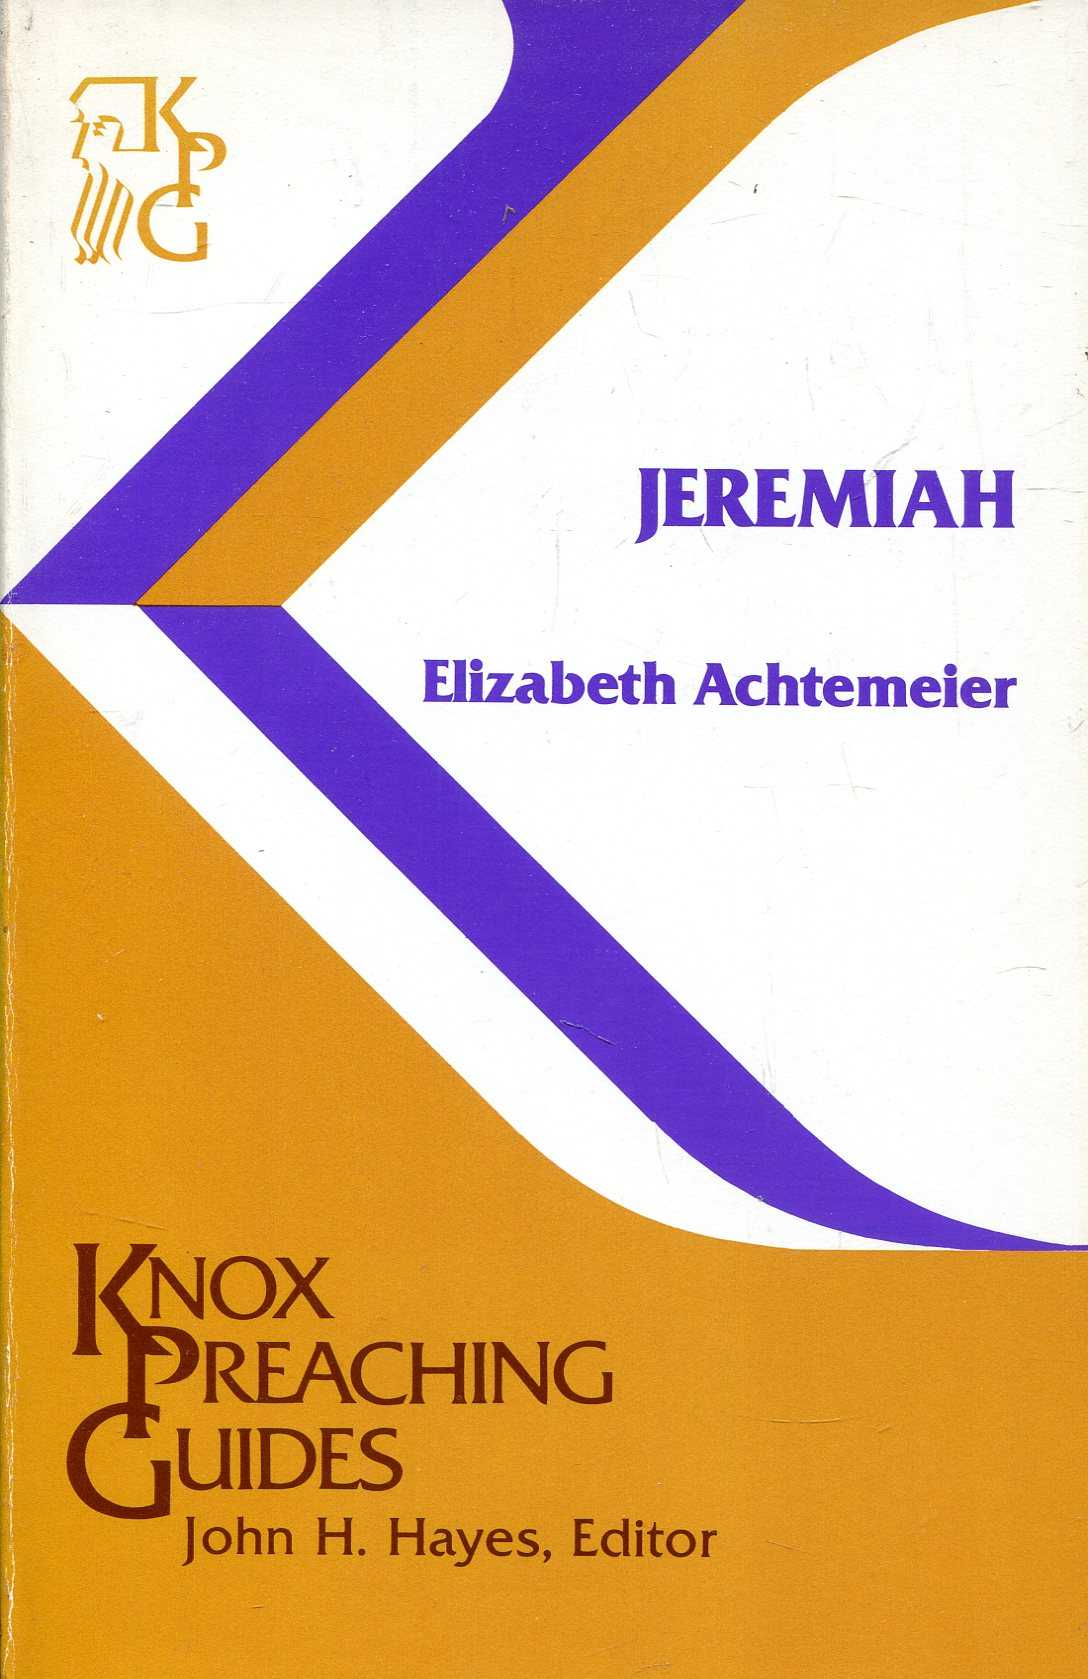 Image for Jeremiah (Knox Preaching Guides)